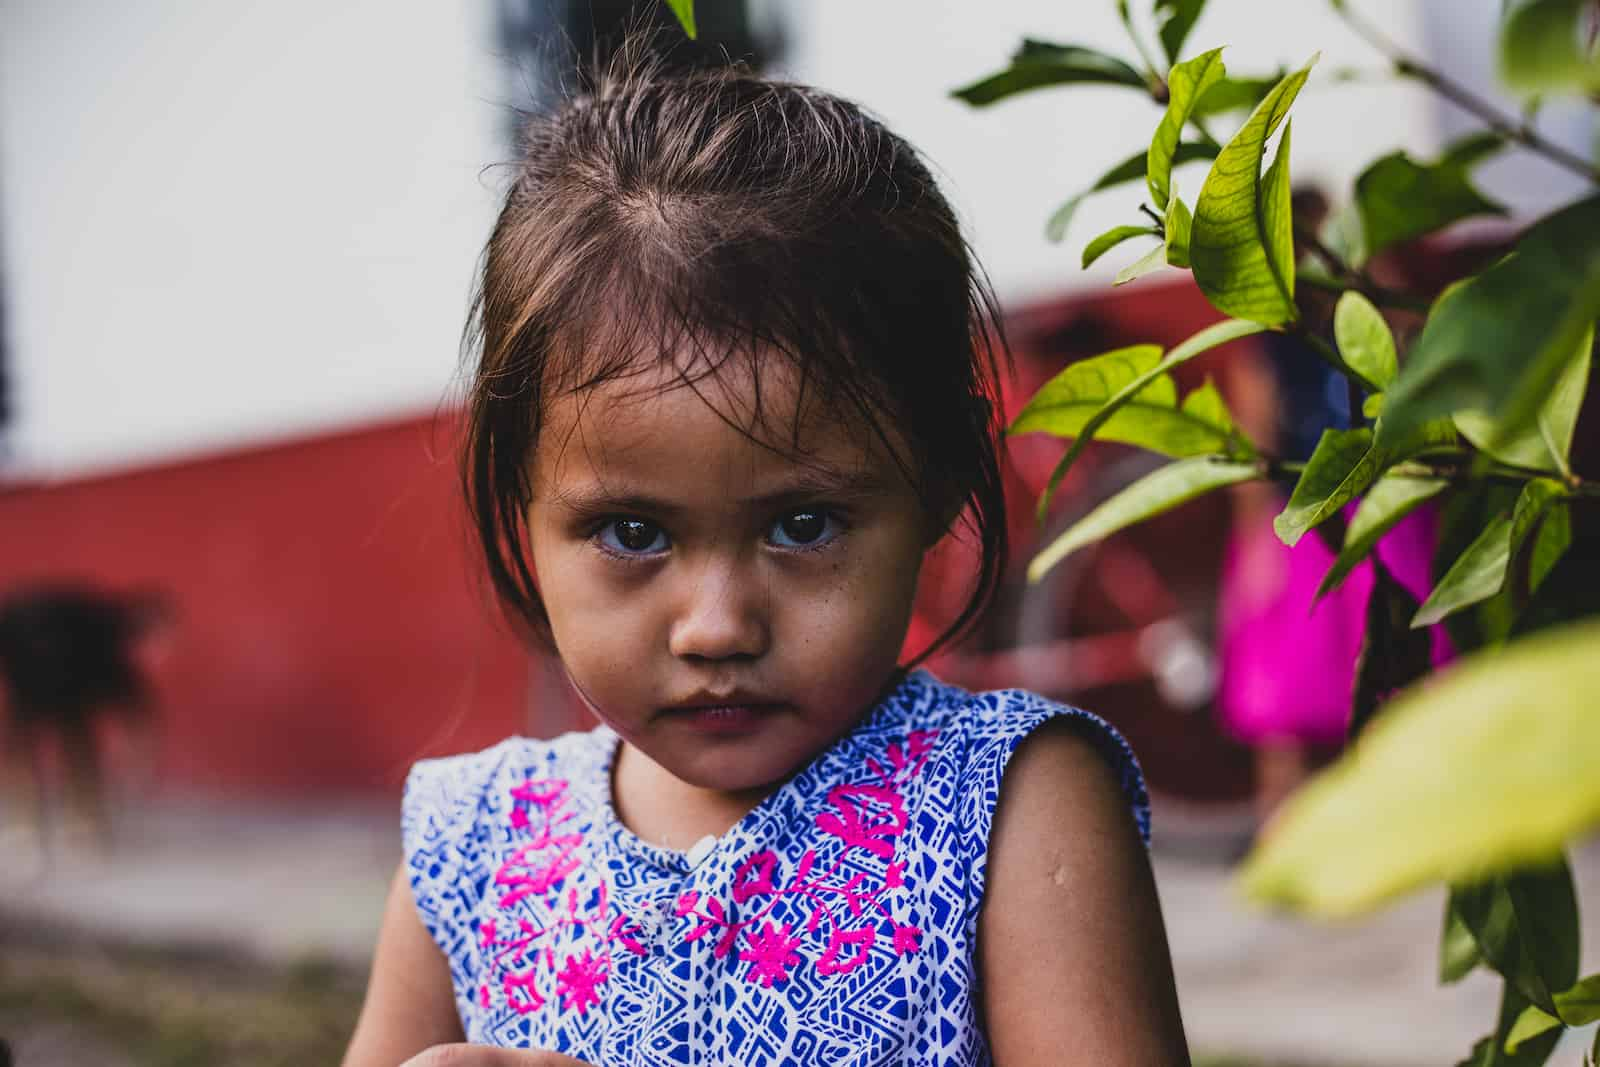 How to Help Kids in Need: A girl wearing a blue dress looks at the camera with a serious look on her face.